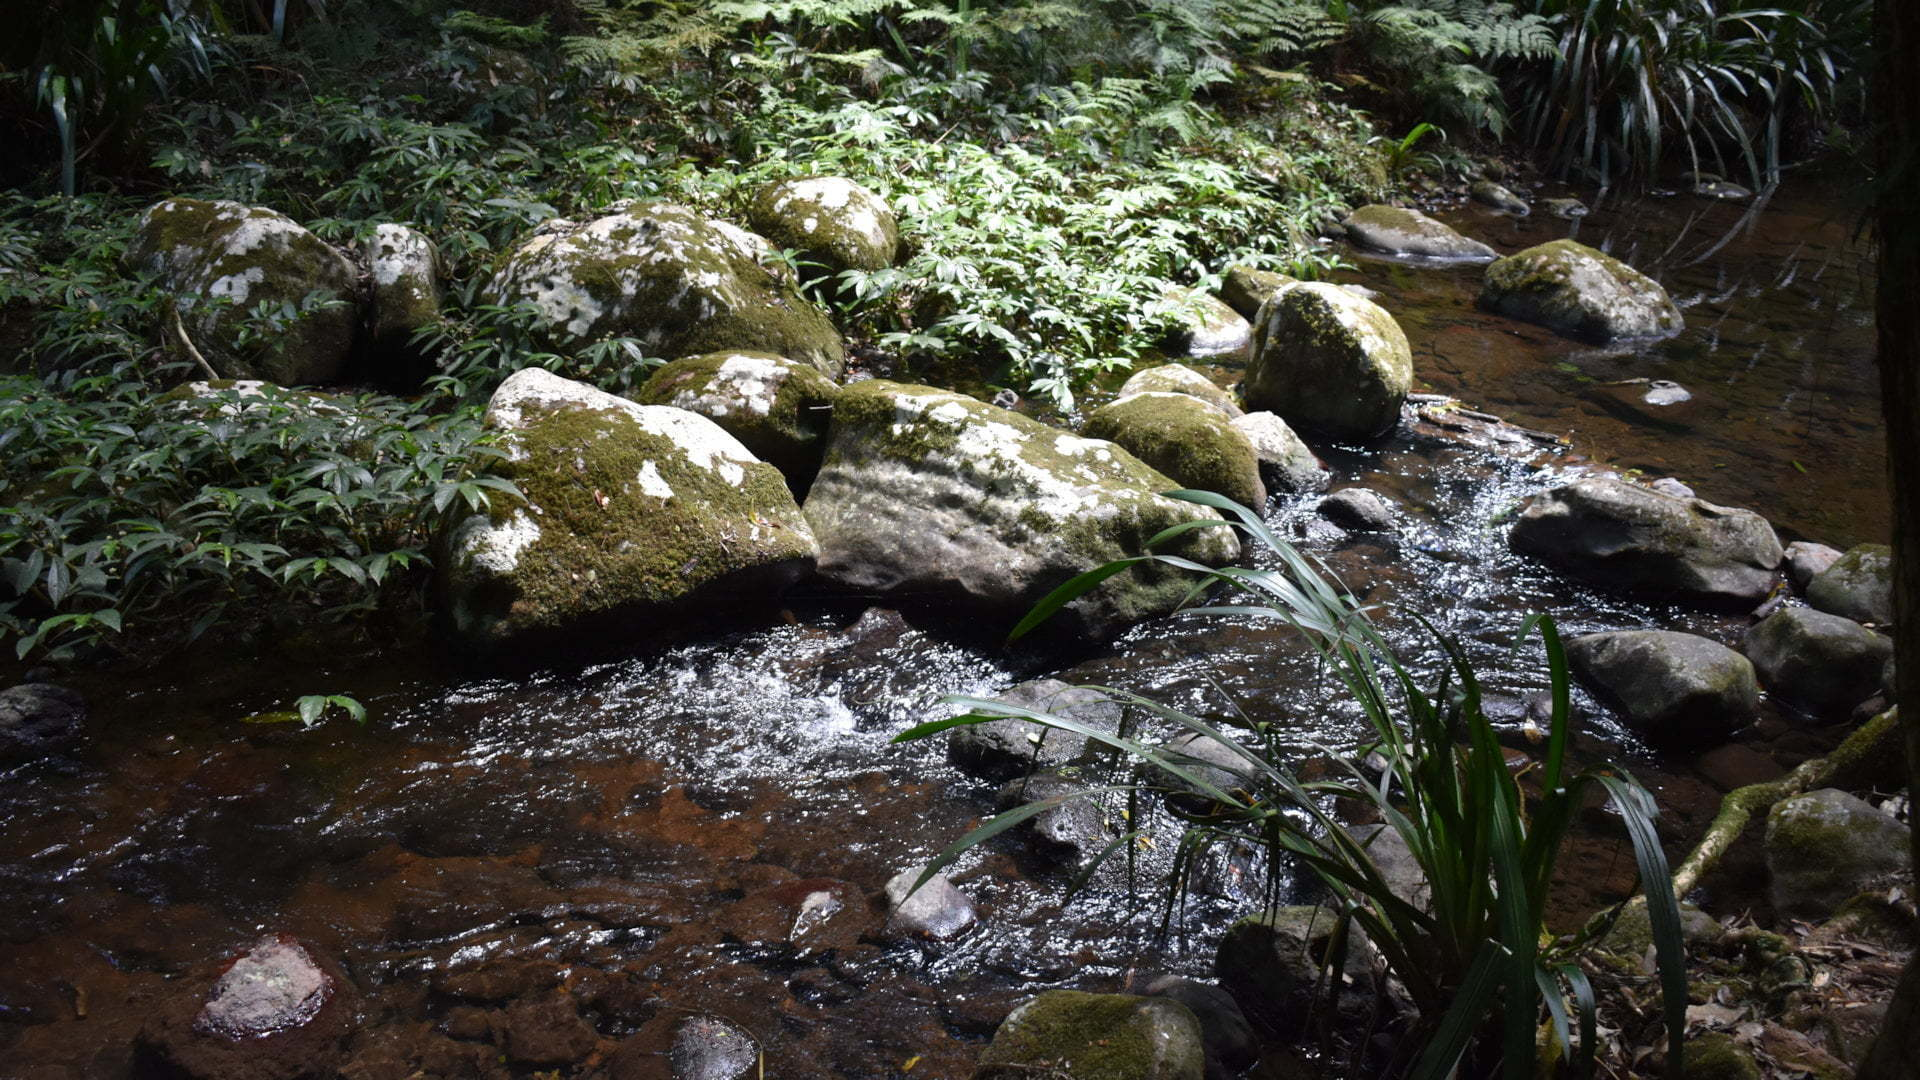 Creek in rainforest, Brindle Creek at the Border Ranges National Park